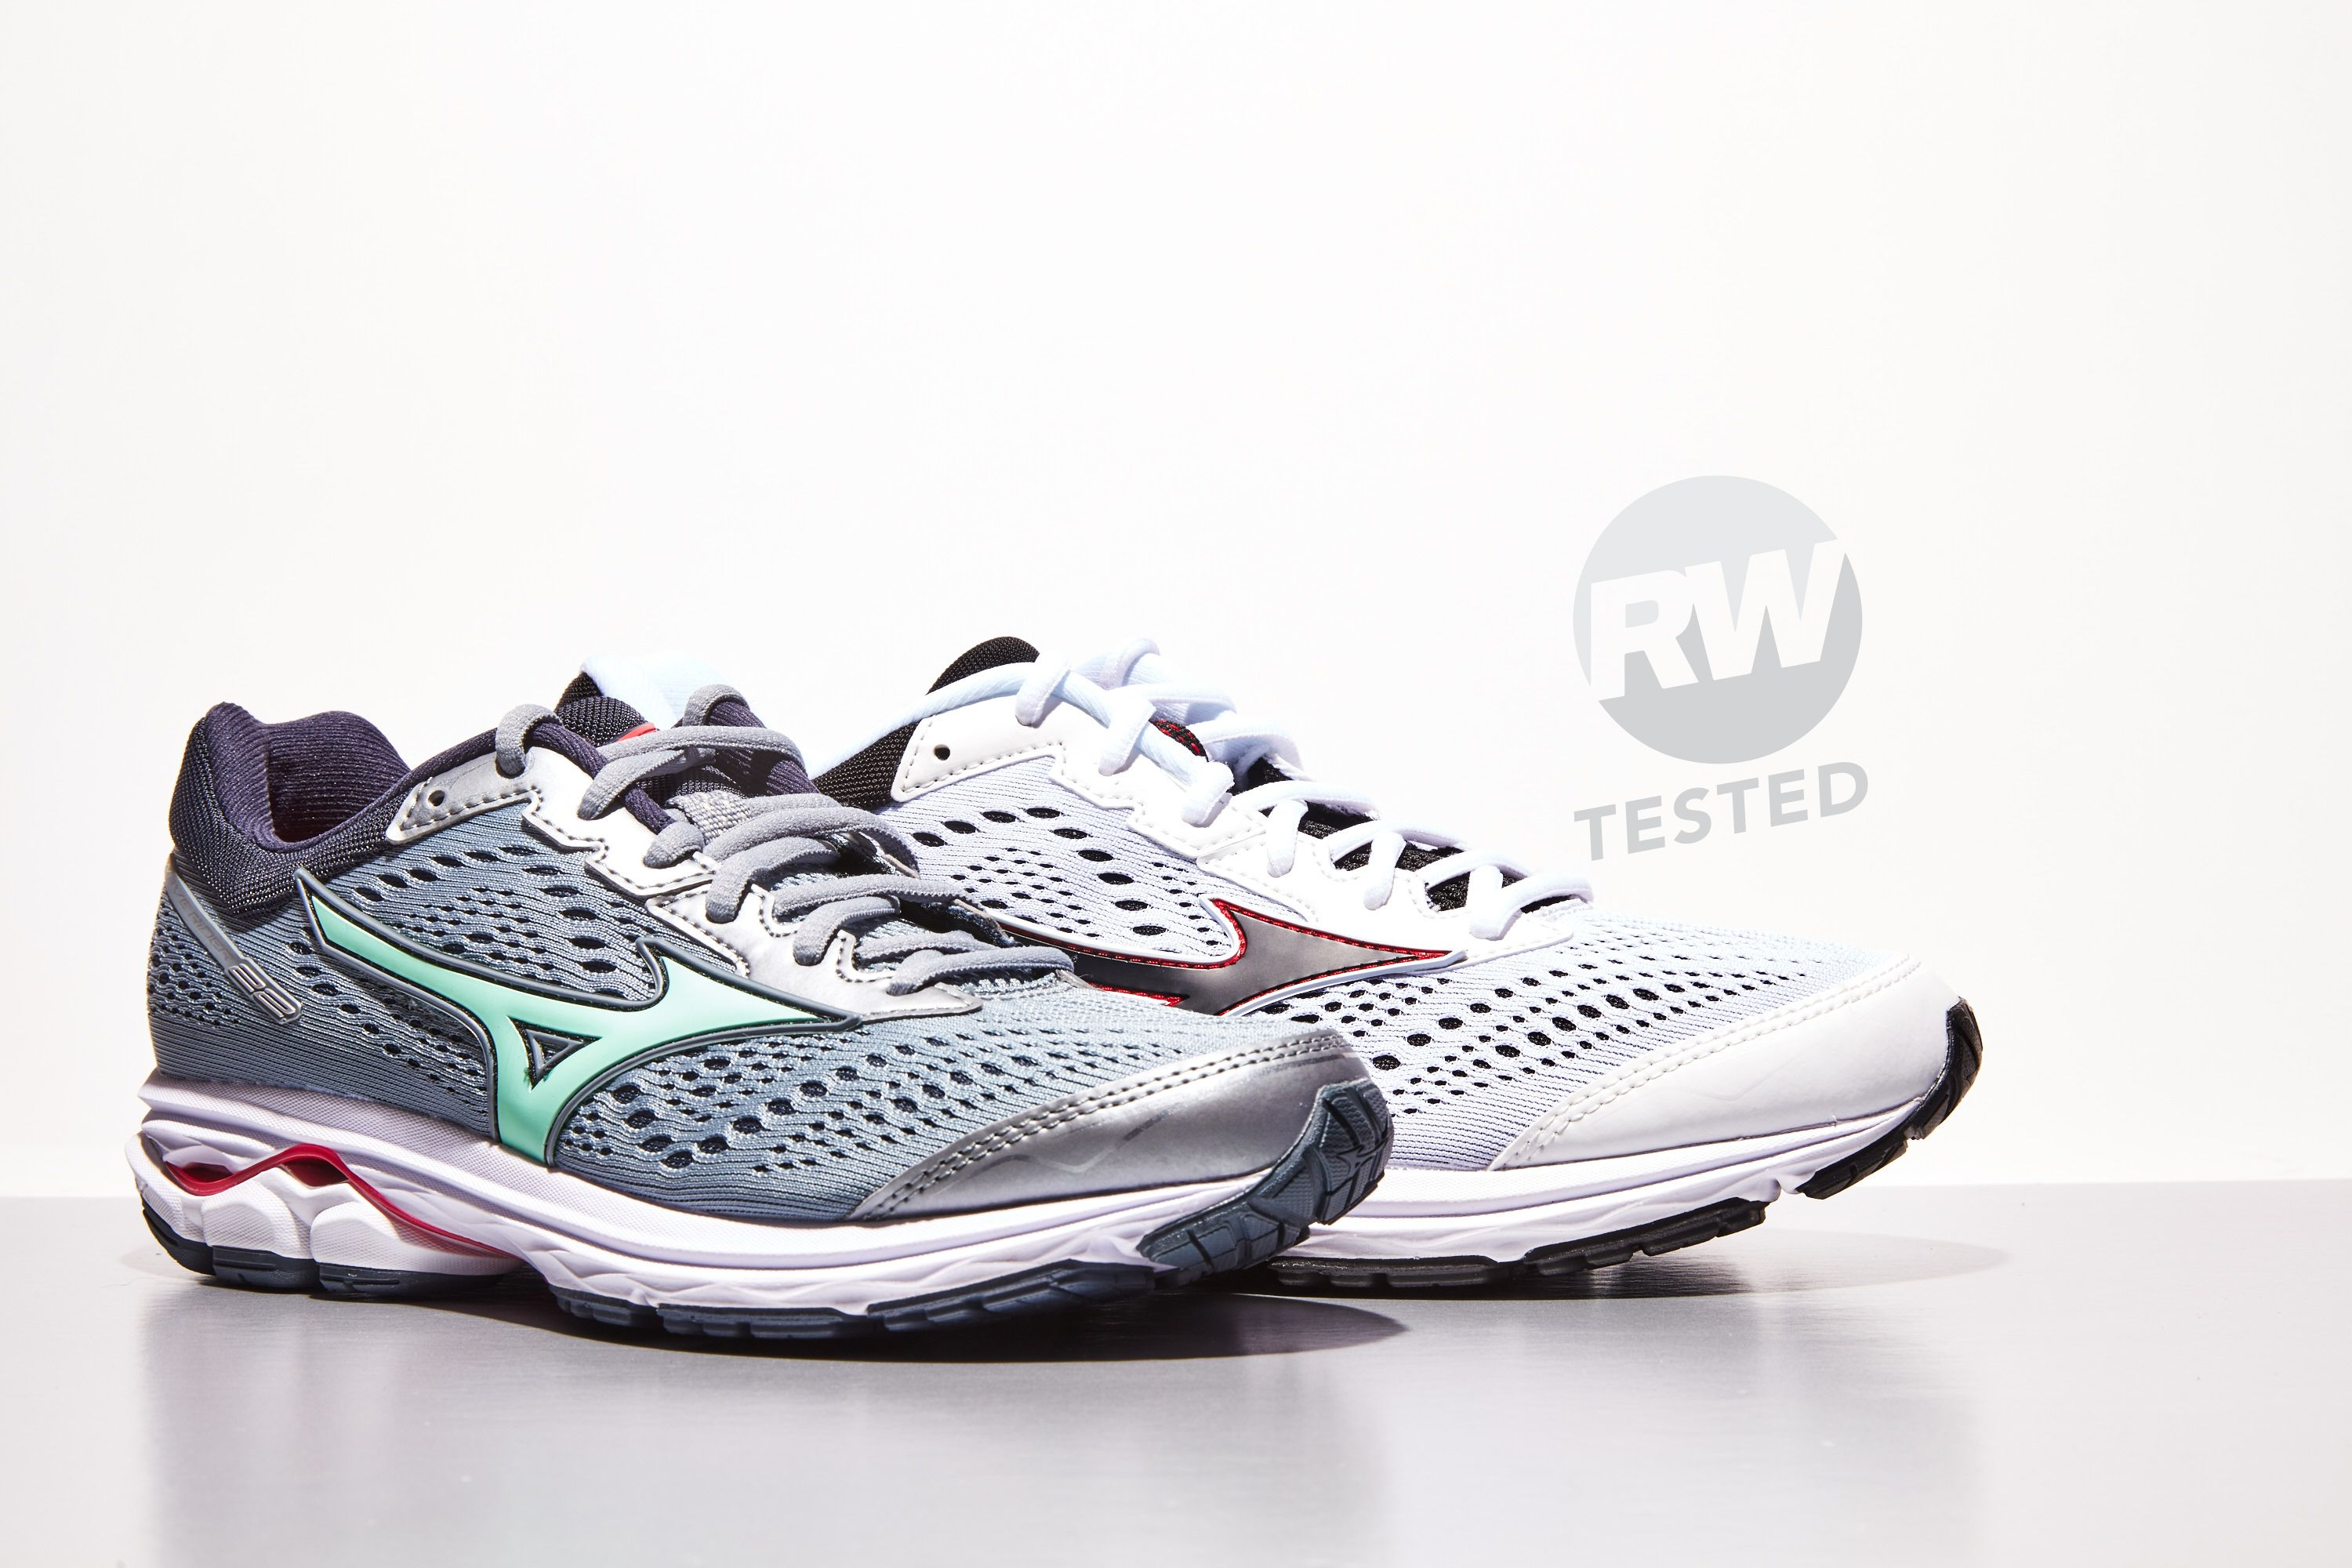 mizuno men's wave rider 22 review precio